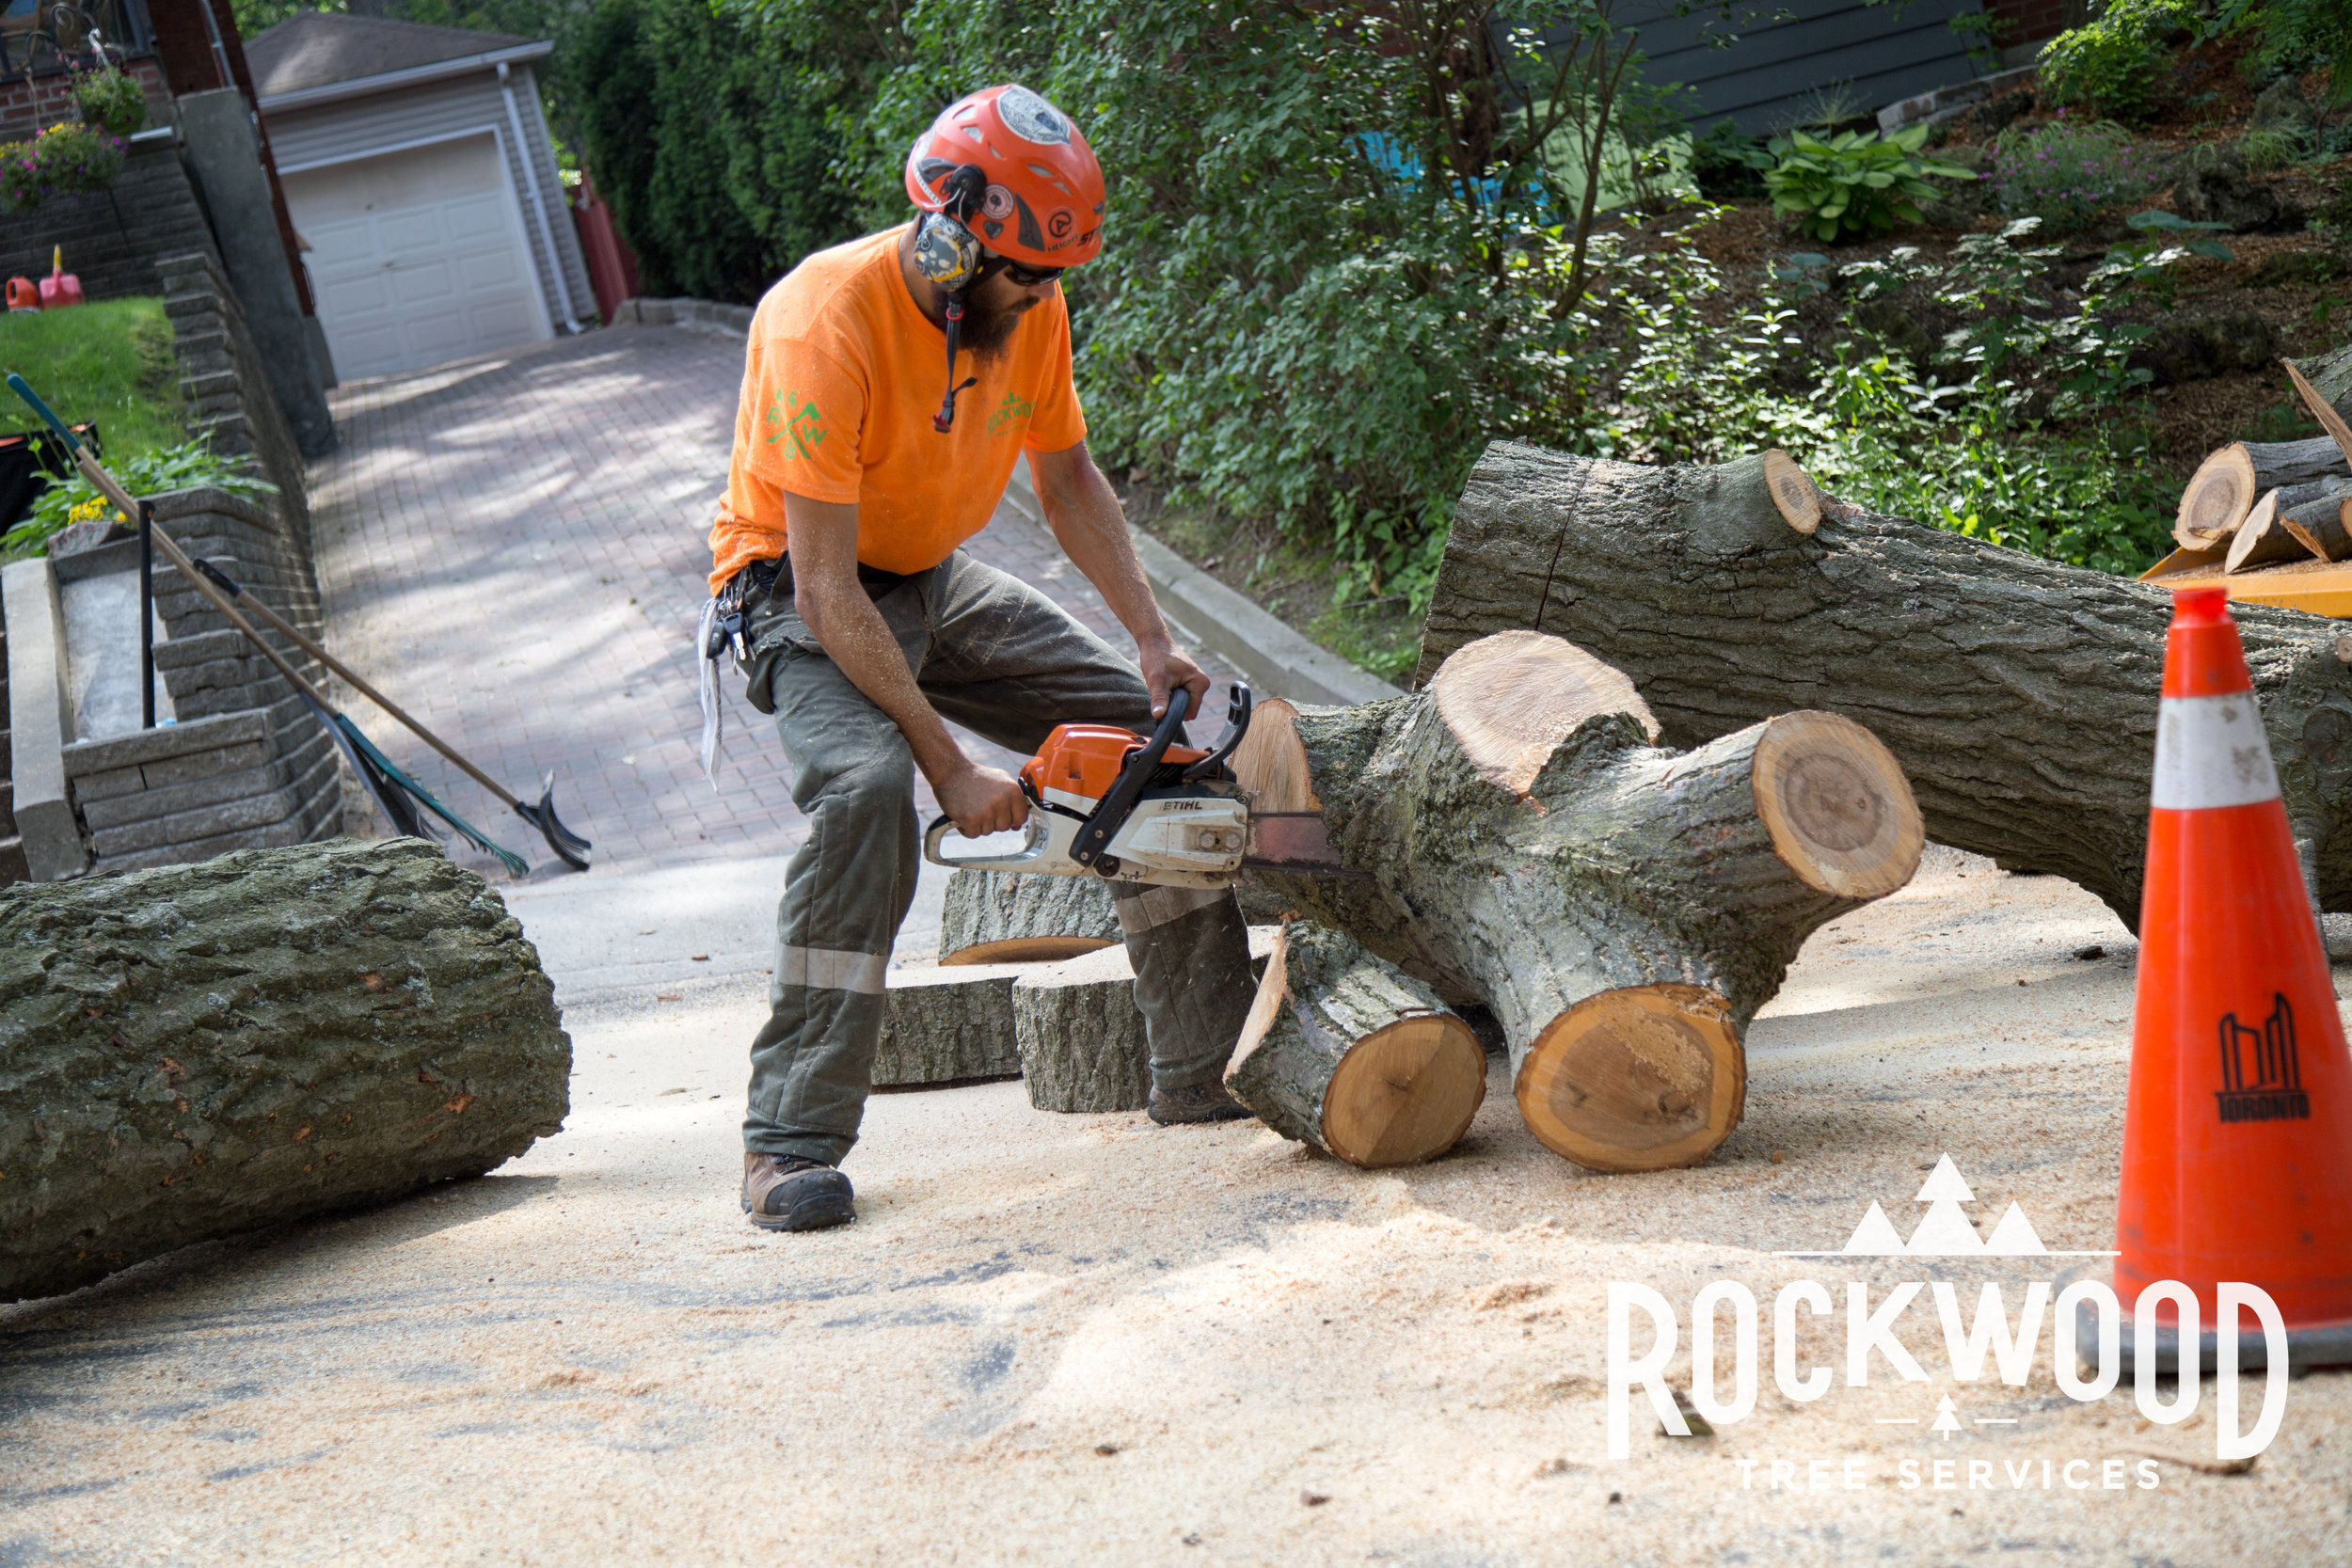 Great Service  We were very pleased with the work done by Rockwood Tree Service. Dylan was very profession and helpful and gave us a great estimate to cut down a dead tree, tidy up the old maple tree and remove overgrown bushes and shrubs. They worked very quickly and cleaned up the yard nicely before leaving. I would definitely use their service again.  -Anita D.8/25/2015